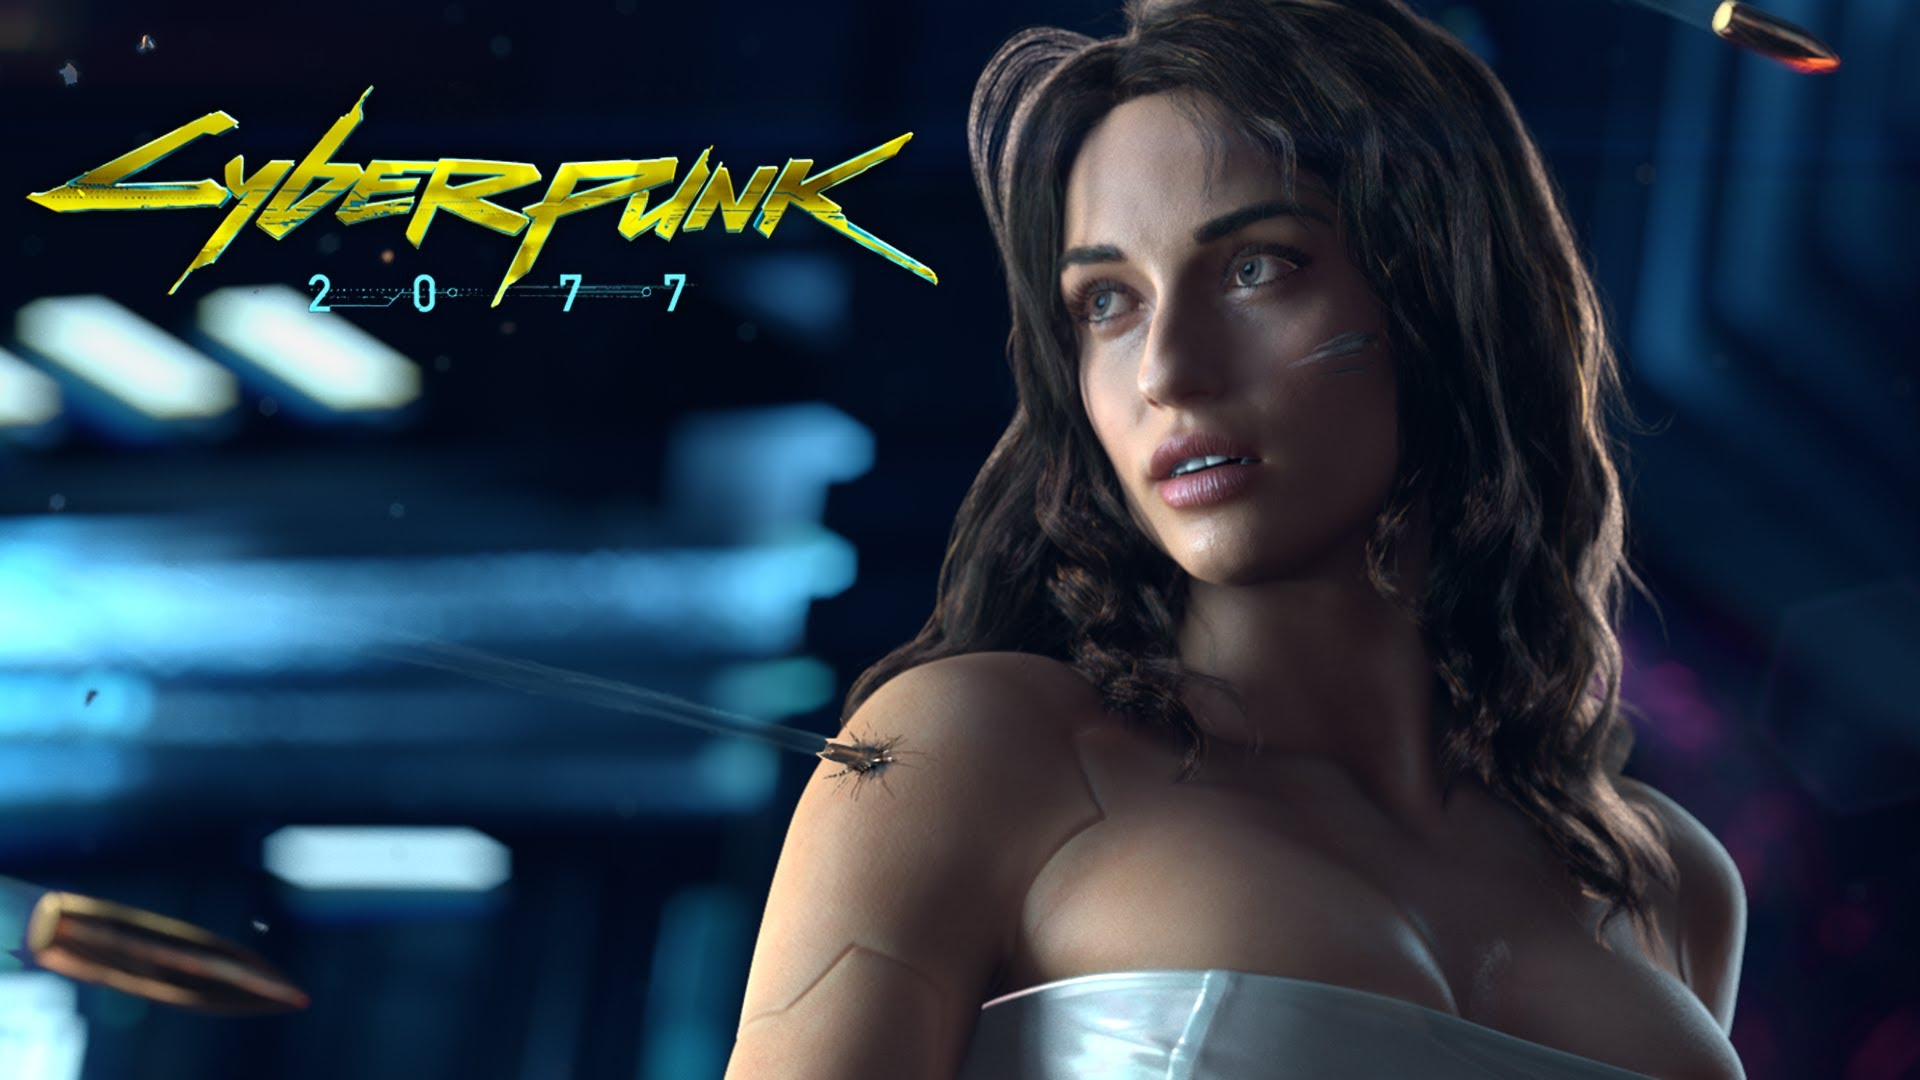 Cyberpunk 2077 - it's going to be a long wait for it, let alone Witcher 4